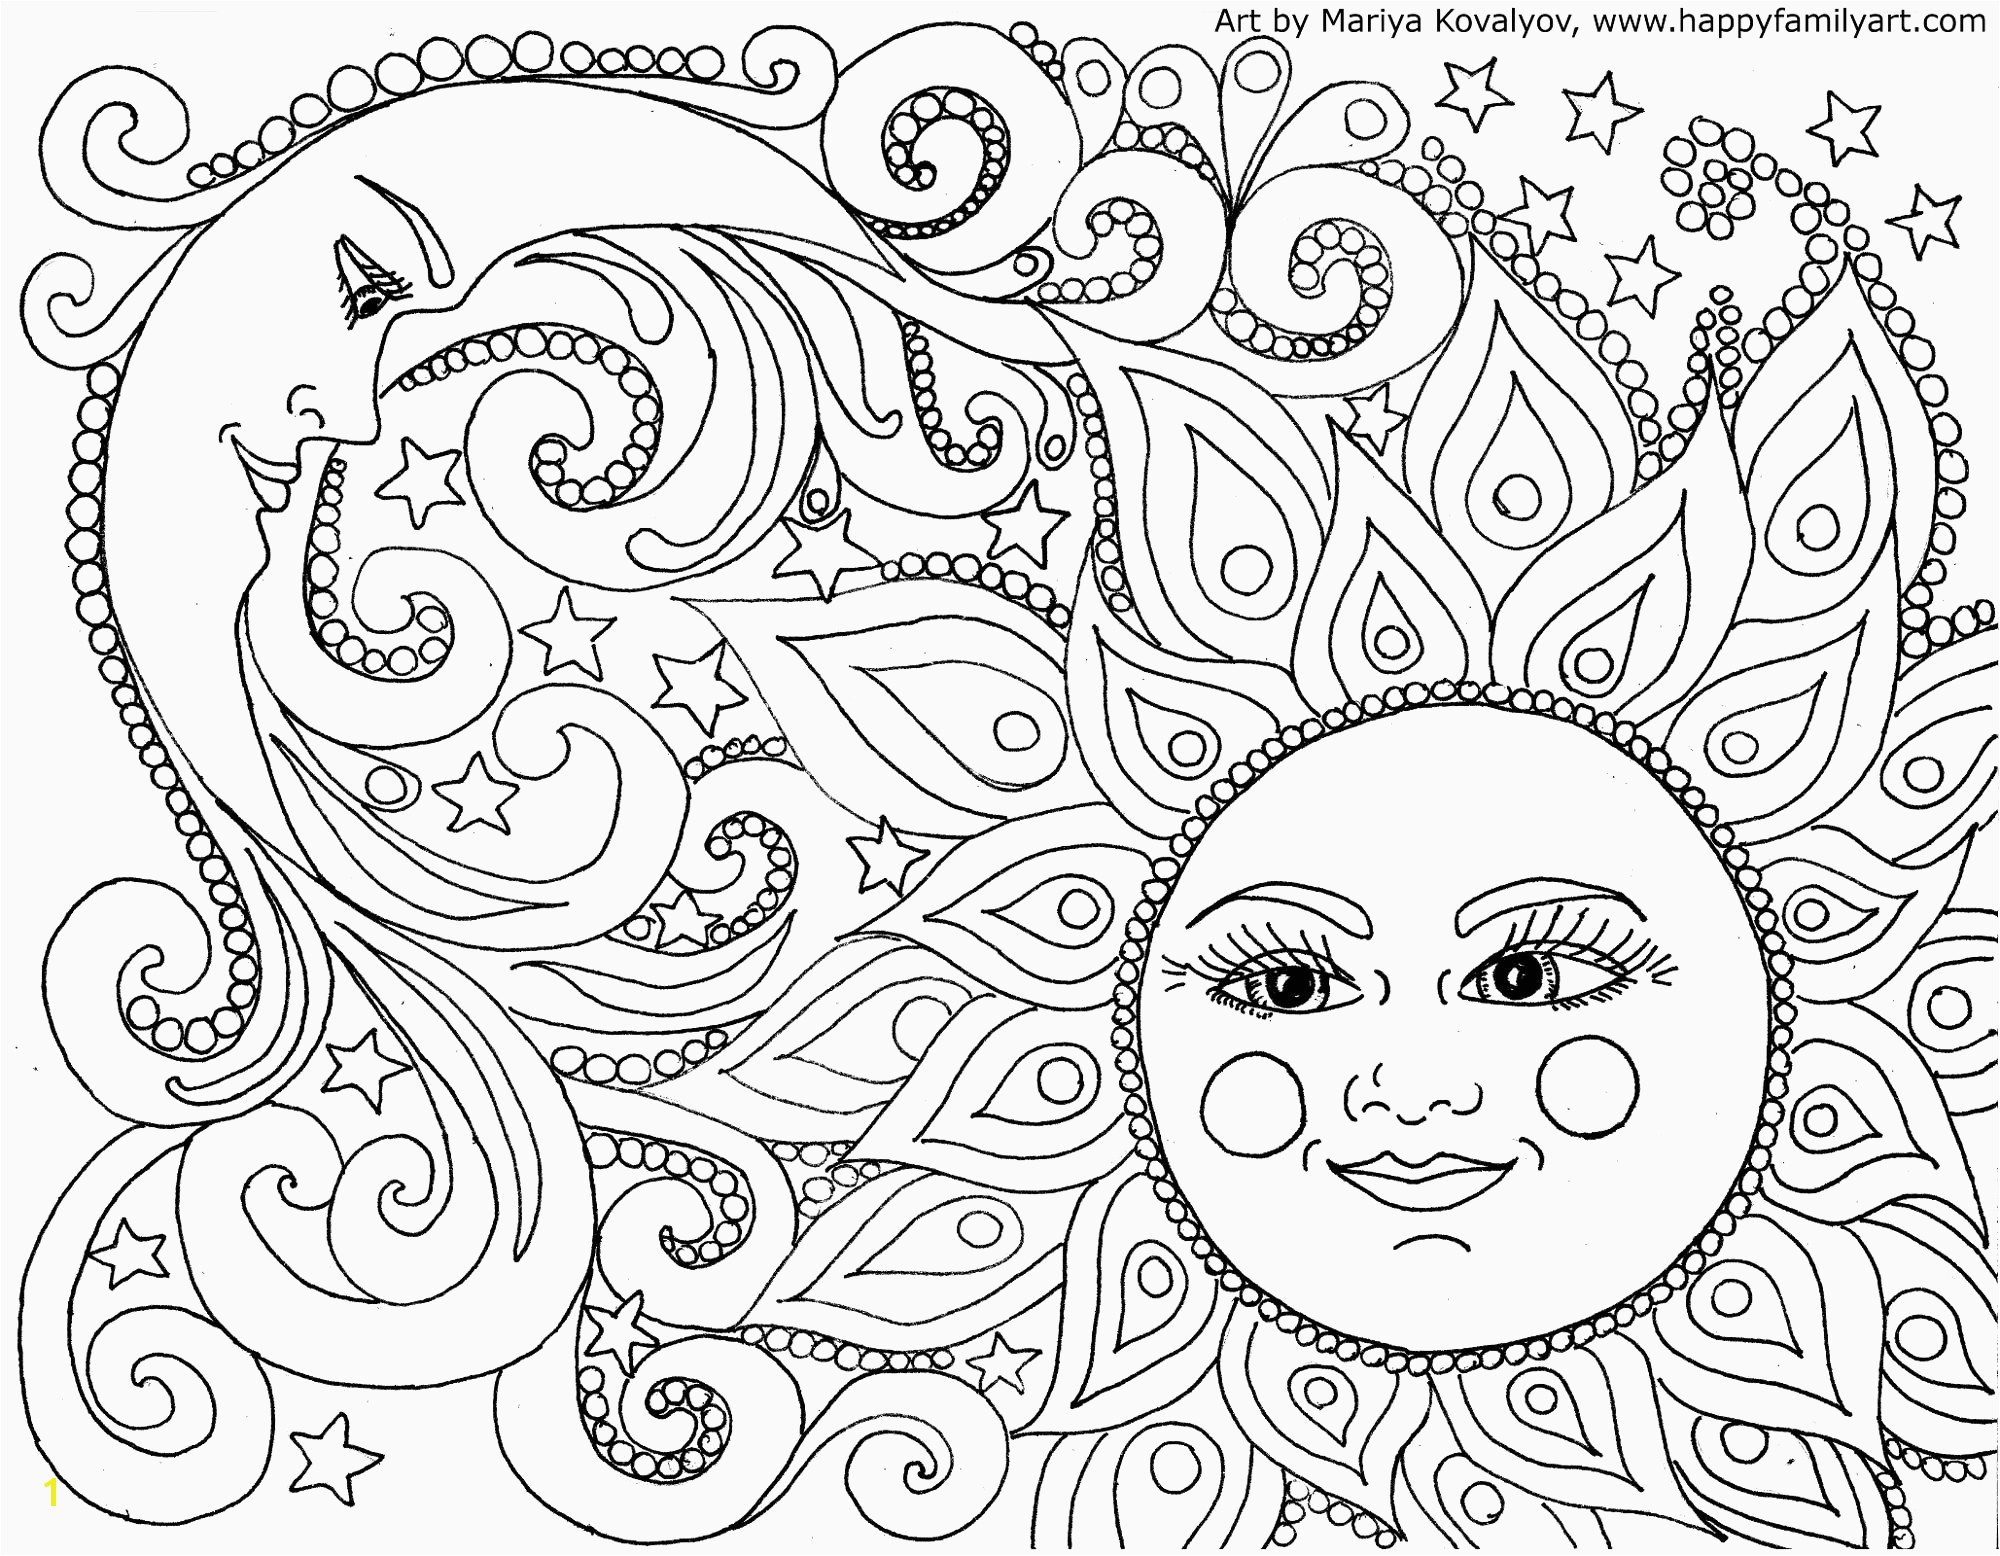 Coloring Pages Websites Free Coloring Websites Coloring Pages